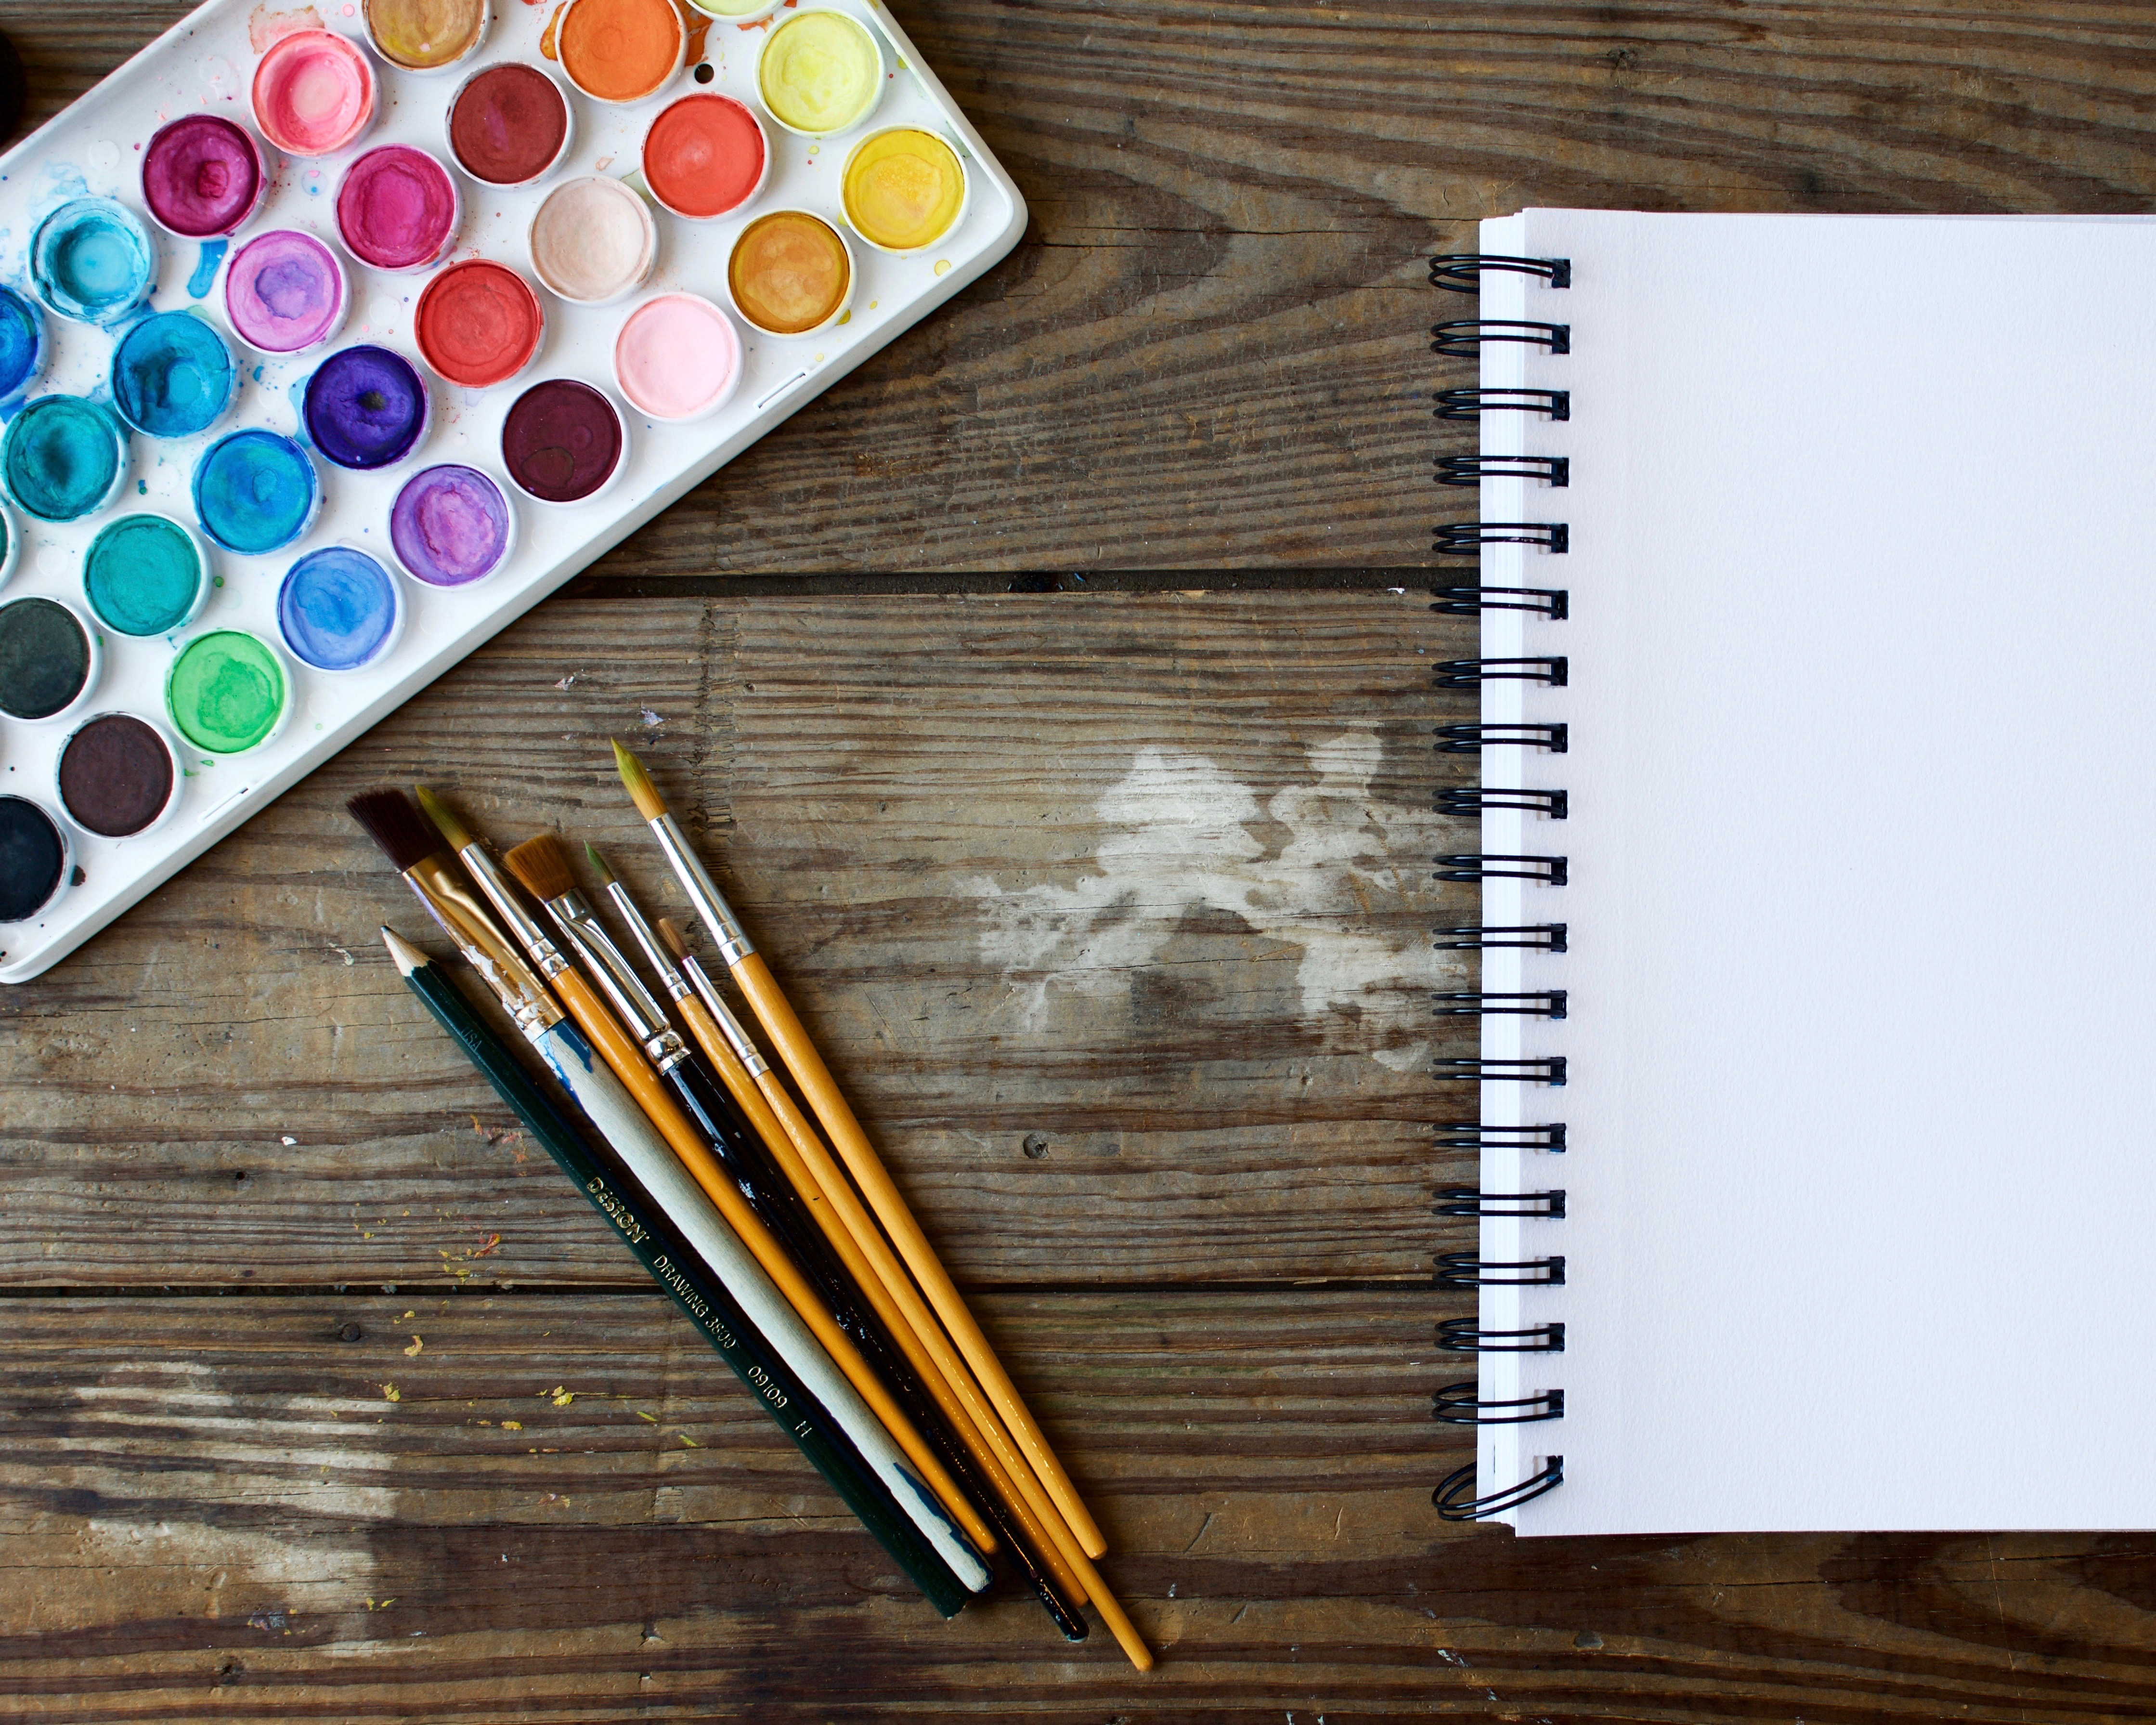 painting-journaling-hobbies-wish